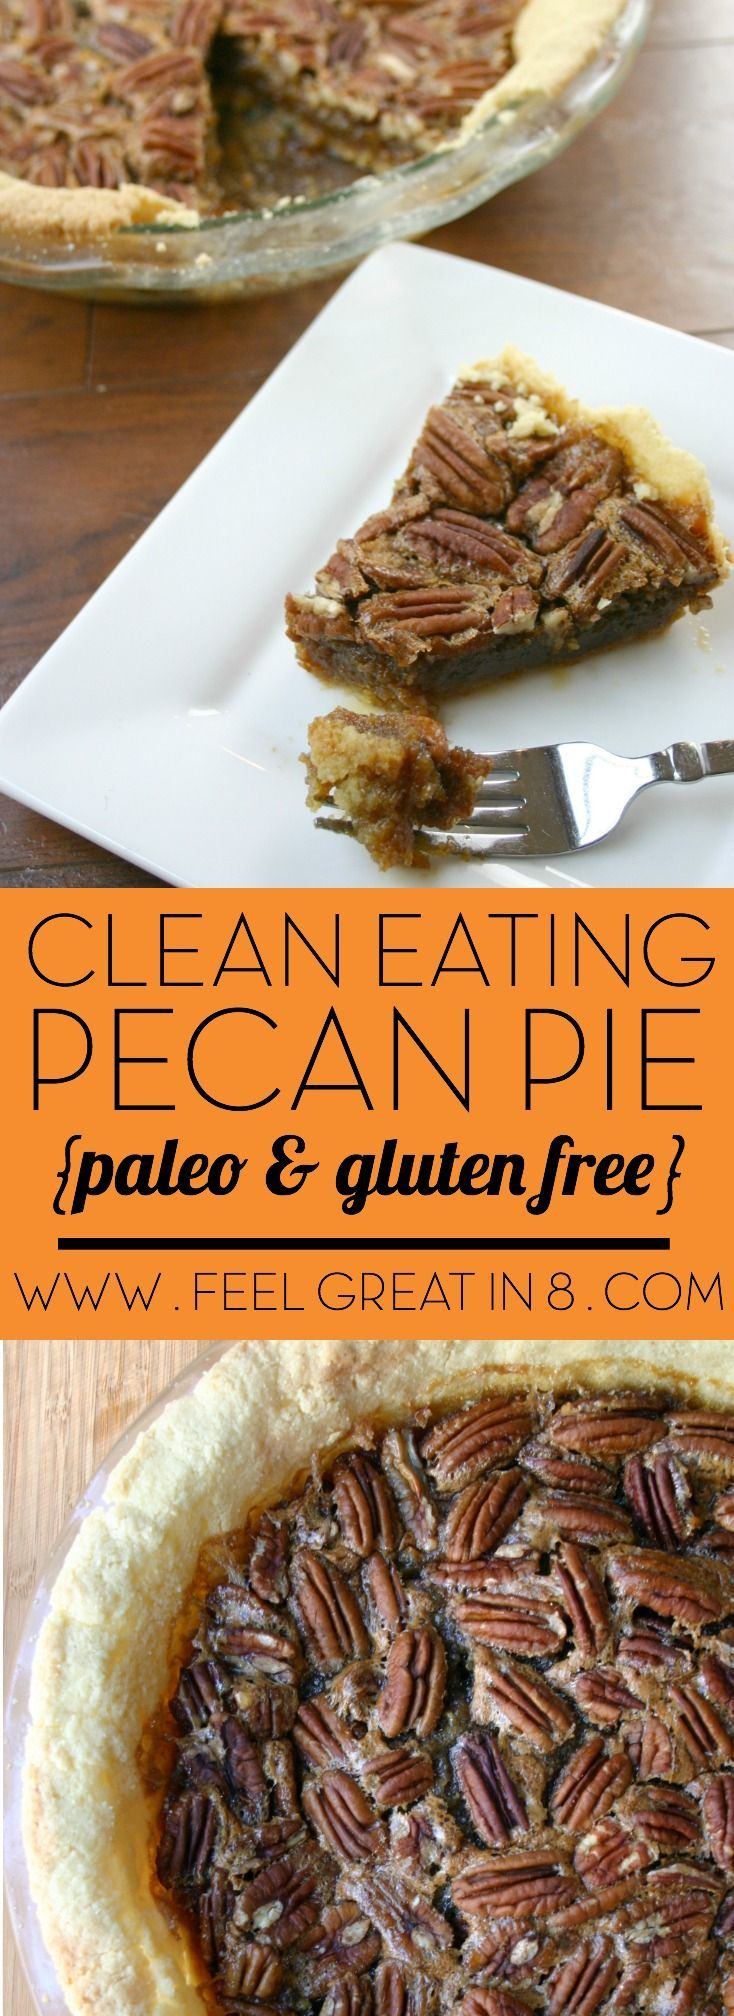 No one will ever guess that this delicious Pecan Pie is clean eating, paleo friendly, gluten free and refined sugar free! Made with an almond flour crust, heart healthy coconut oil, and sweetened with pure maple syrup, this healthier dessert looks and tastes just as good as the original! | Feel Great in 8